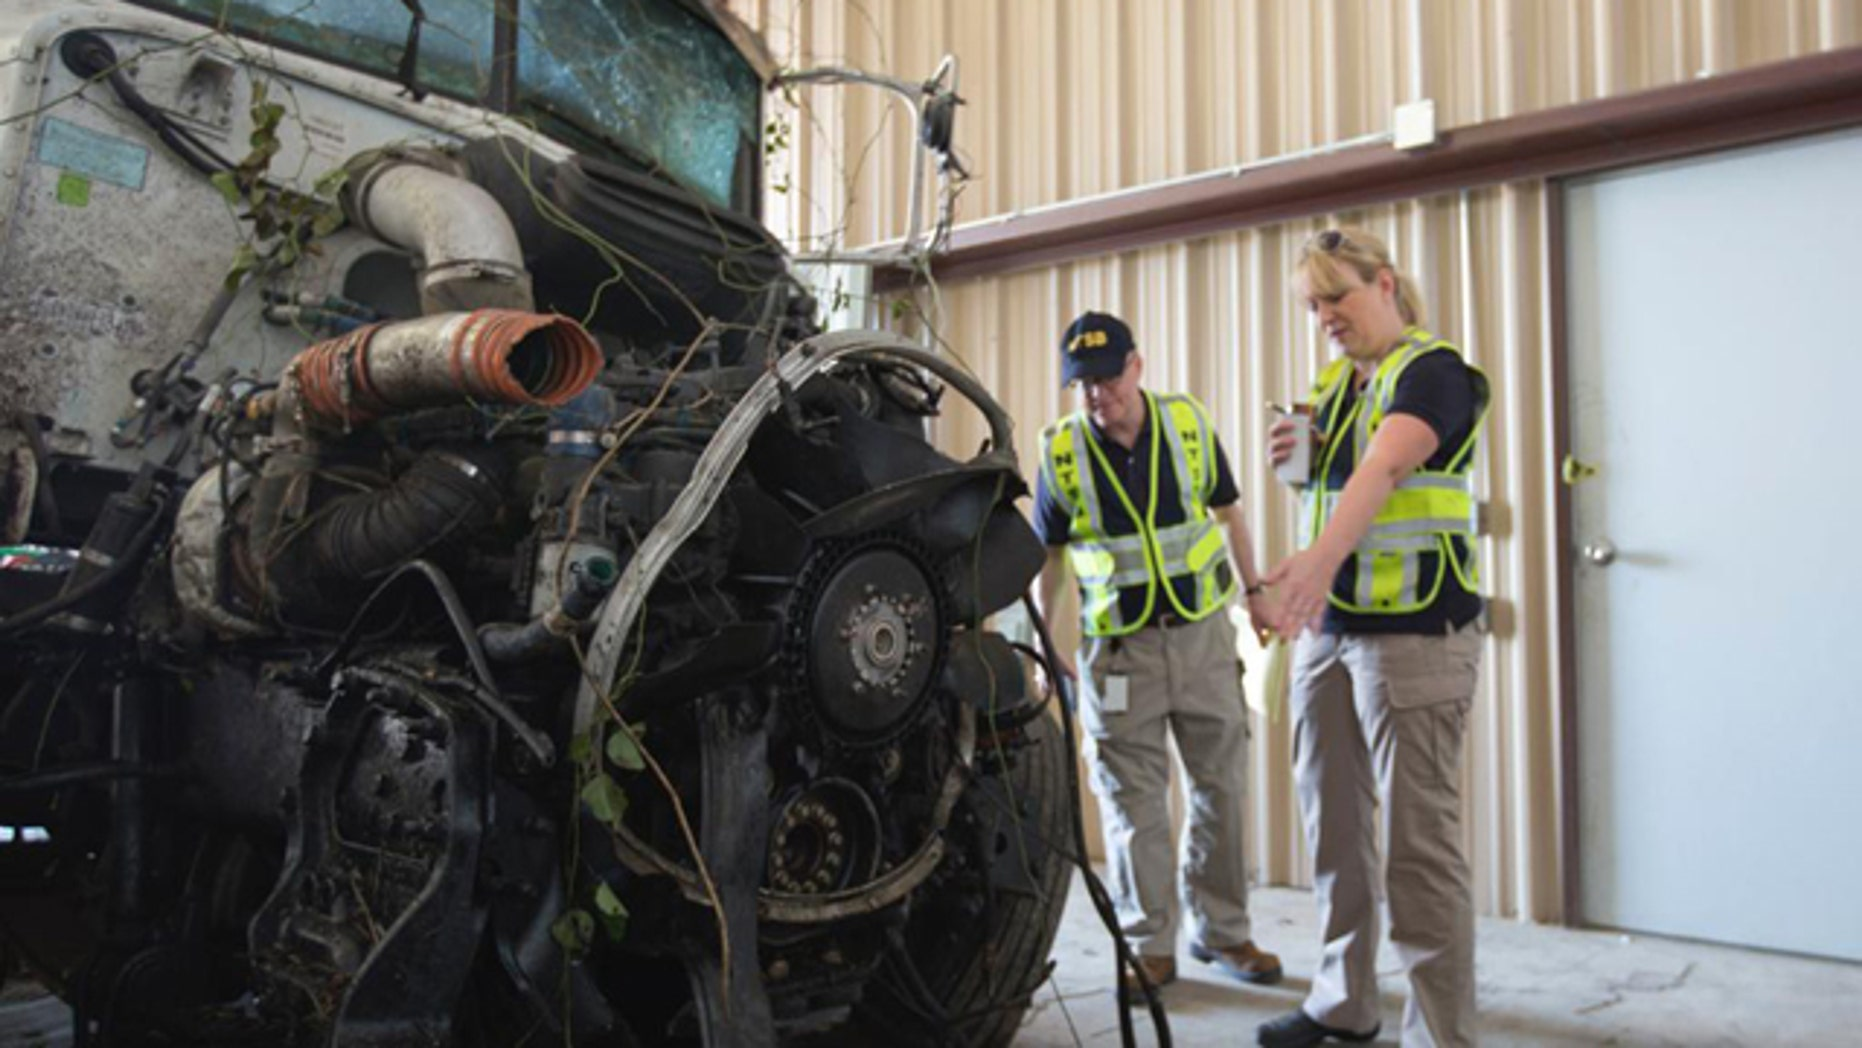 September 27, 2014: In this photo provided by The National Transportation Safety Board, officials examine part of the wreckage involved in a fatal highway accident in Davis, Okla. (AP Photo/National Transportation Safety Board)